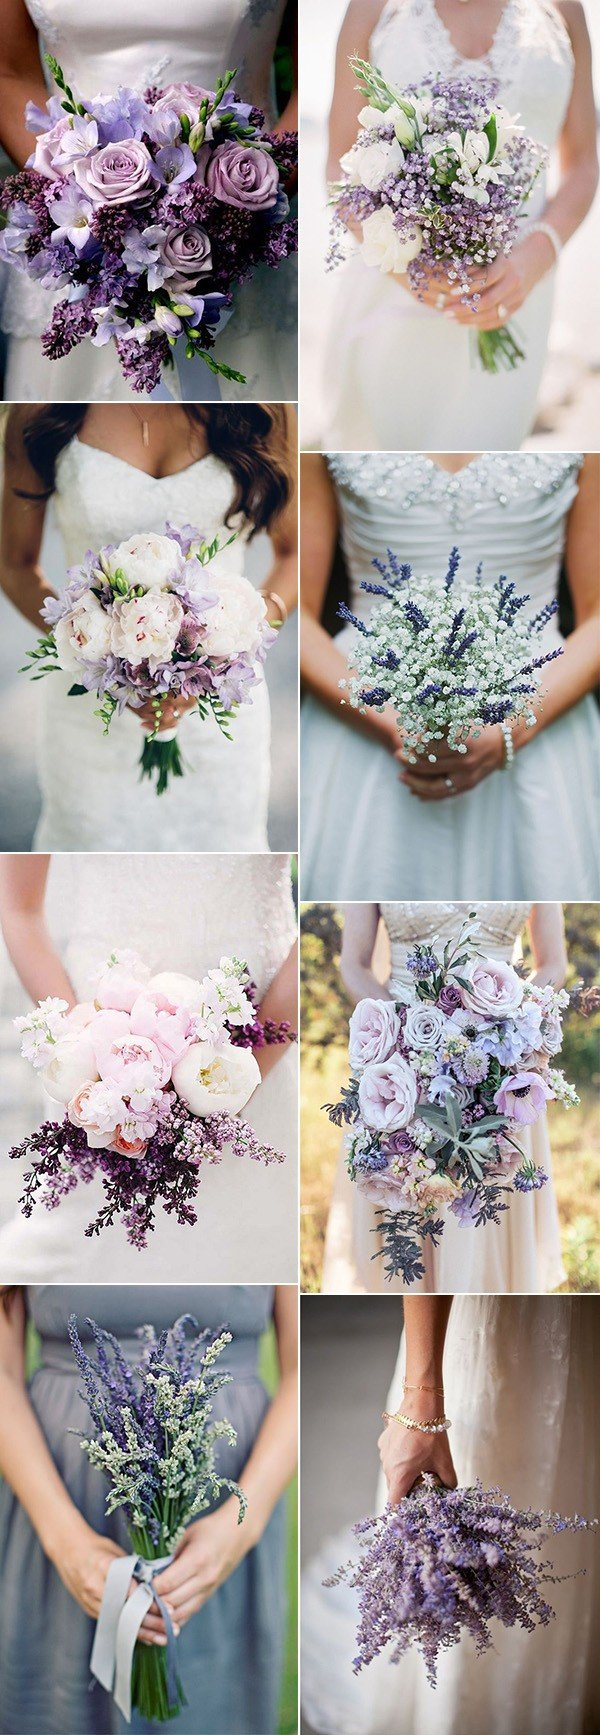 Lavender wedding ideas archives oh best day ever lavender themed wedding bouquet ideas junglespirit Images